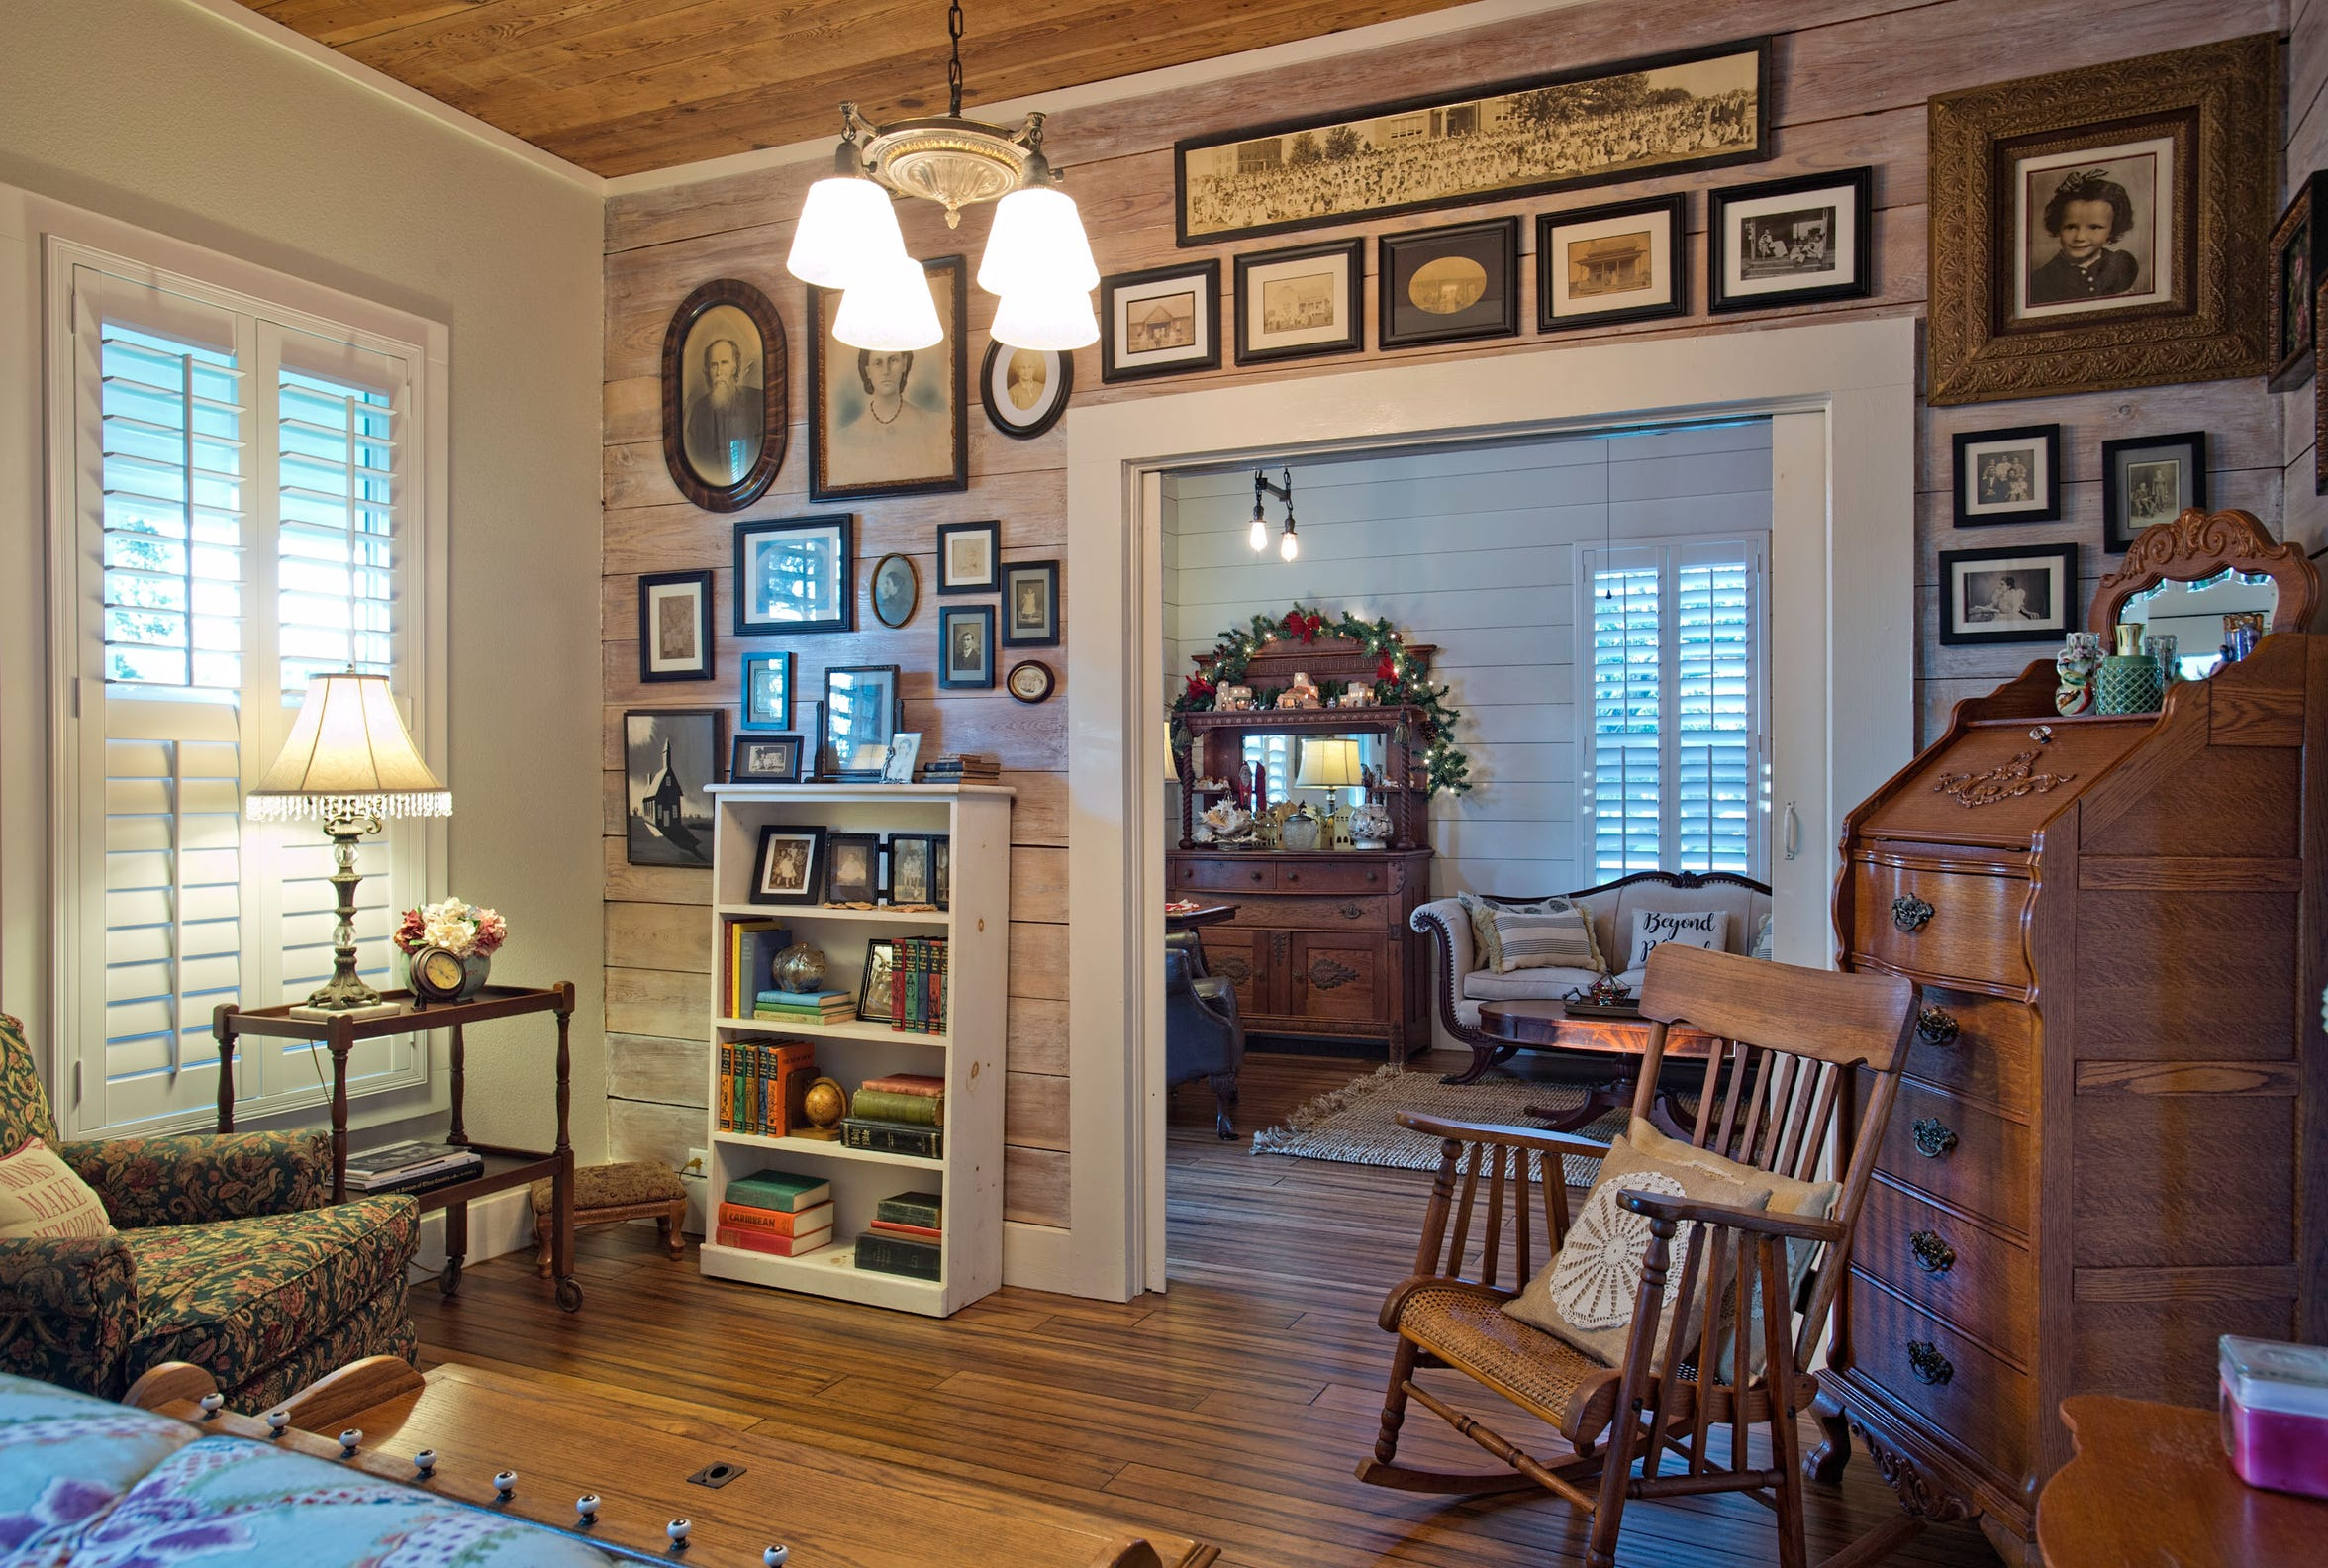 The guest bedroom has a shiplap wood walled sitting area perfect for displaying vintage family photos